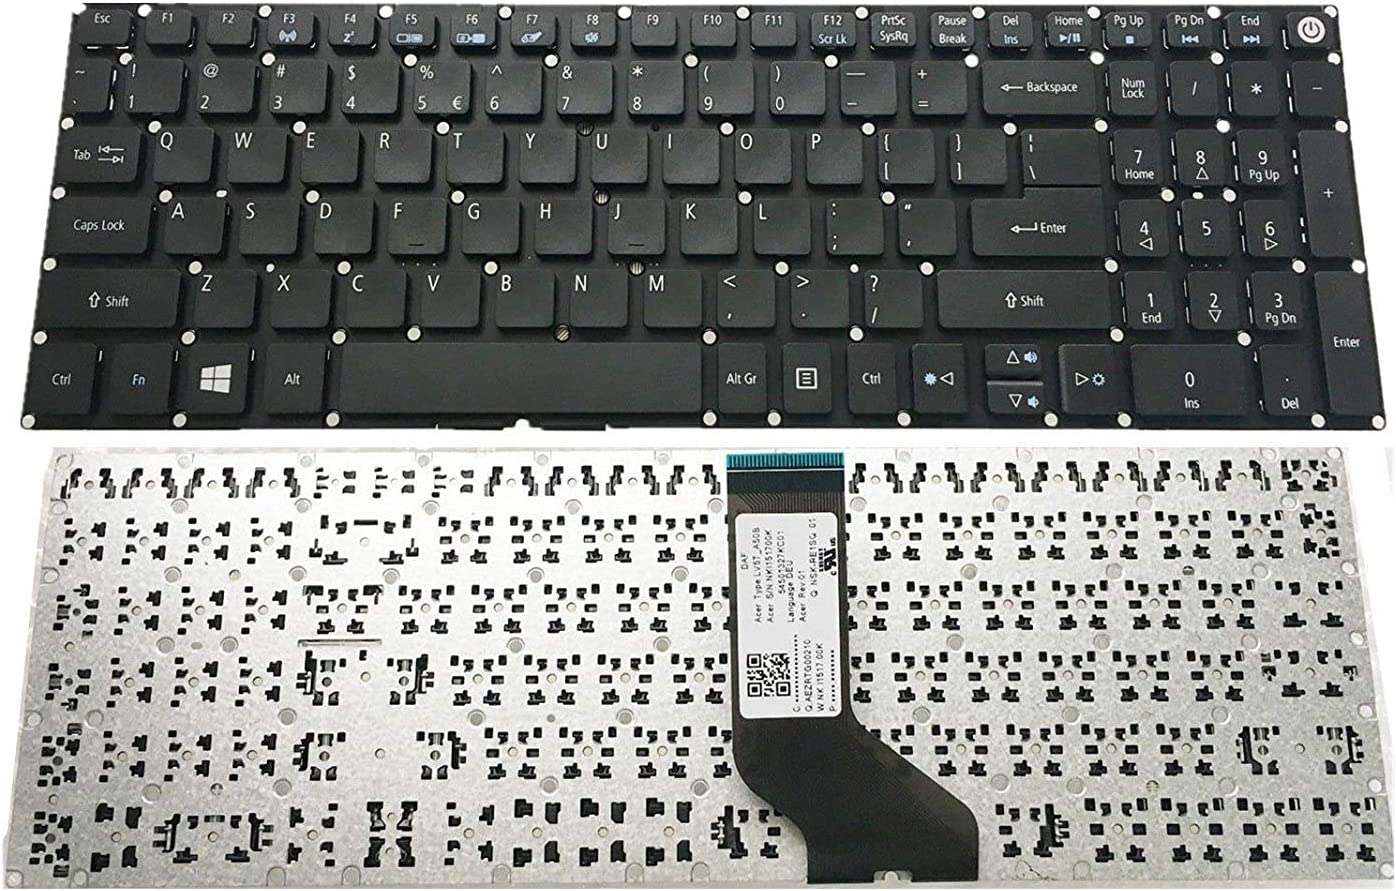 Replacement Keyboard Without Frame for Acer Aspire E5-553G E5-574 E5-574G E5-574T E5-574TG E5-575 E5-575G E5-575T E5-722G E5-752, US Layout Black Color